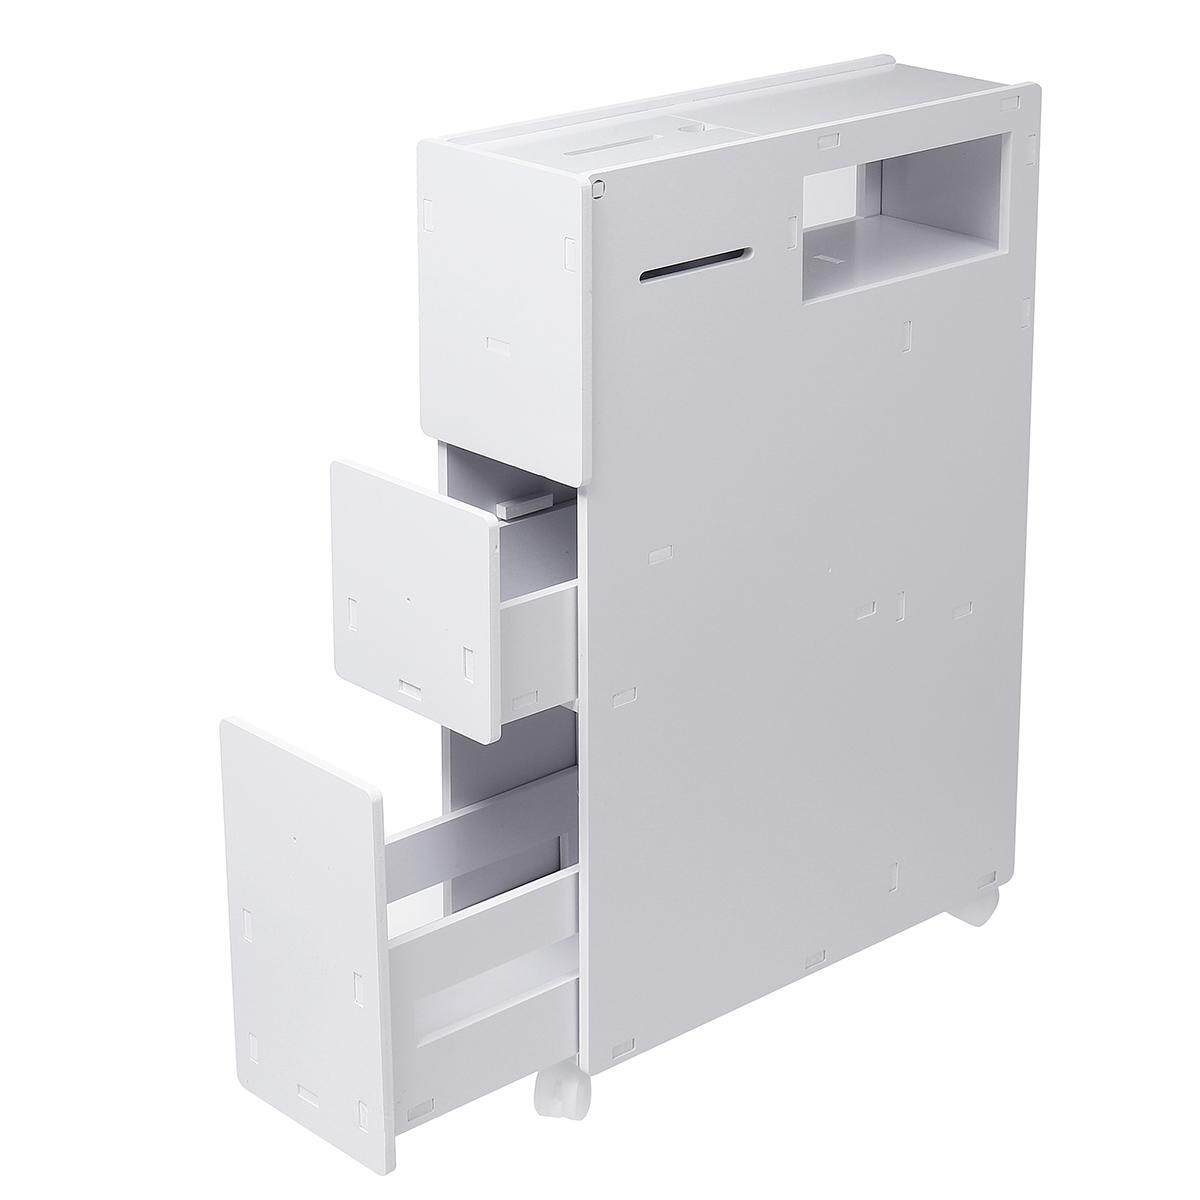 Bathroom Storage Cupboard Cabinet White Wooden Standing Toilet Rack Organizer By Glimmer.